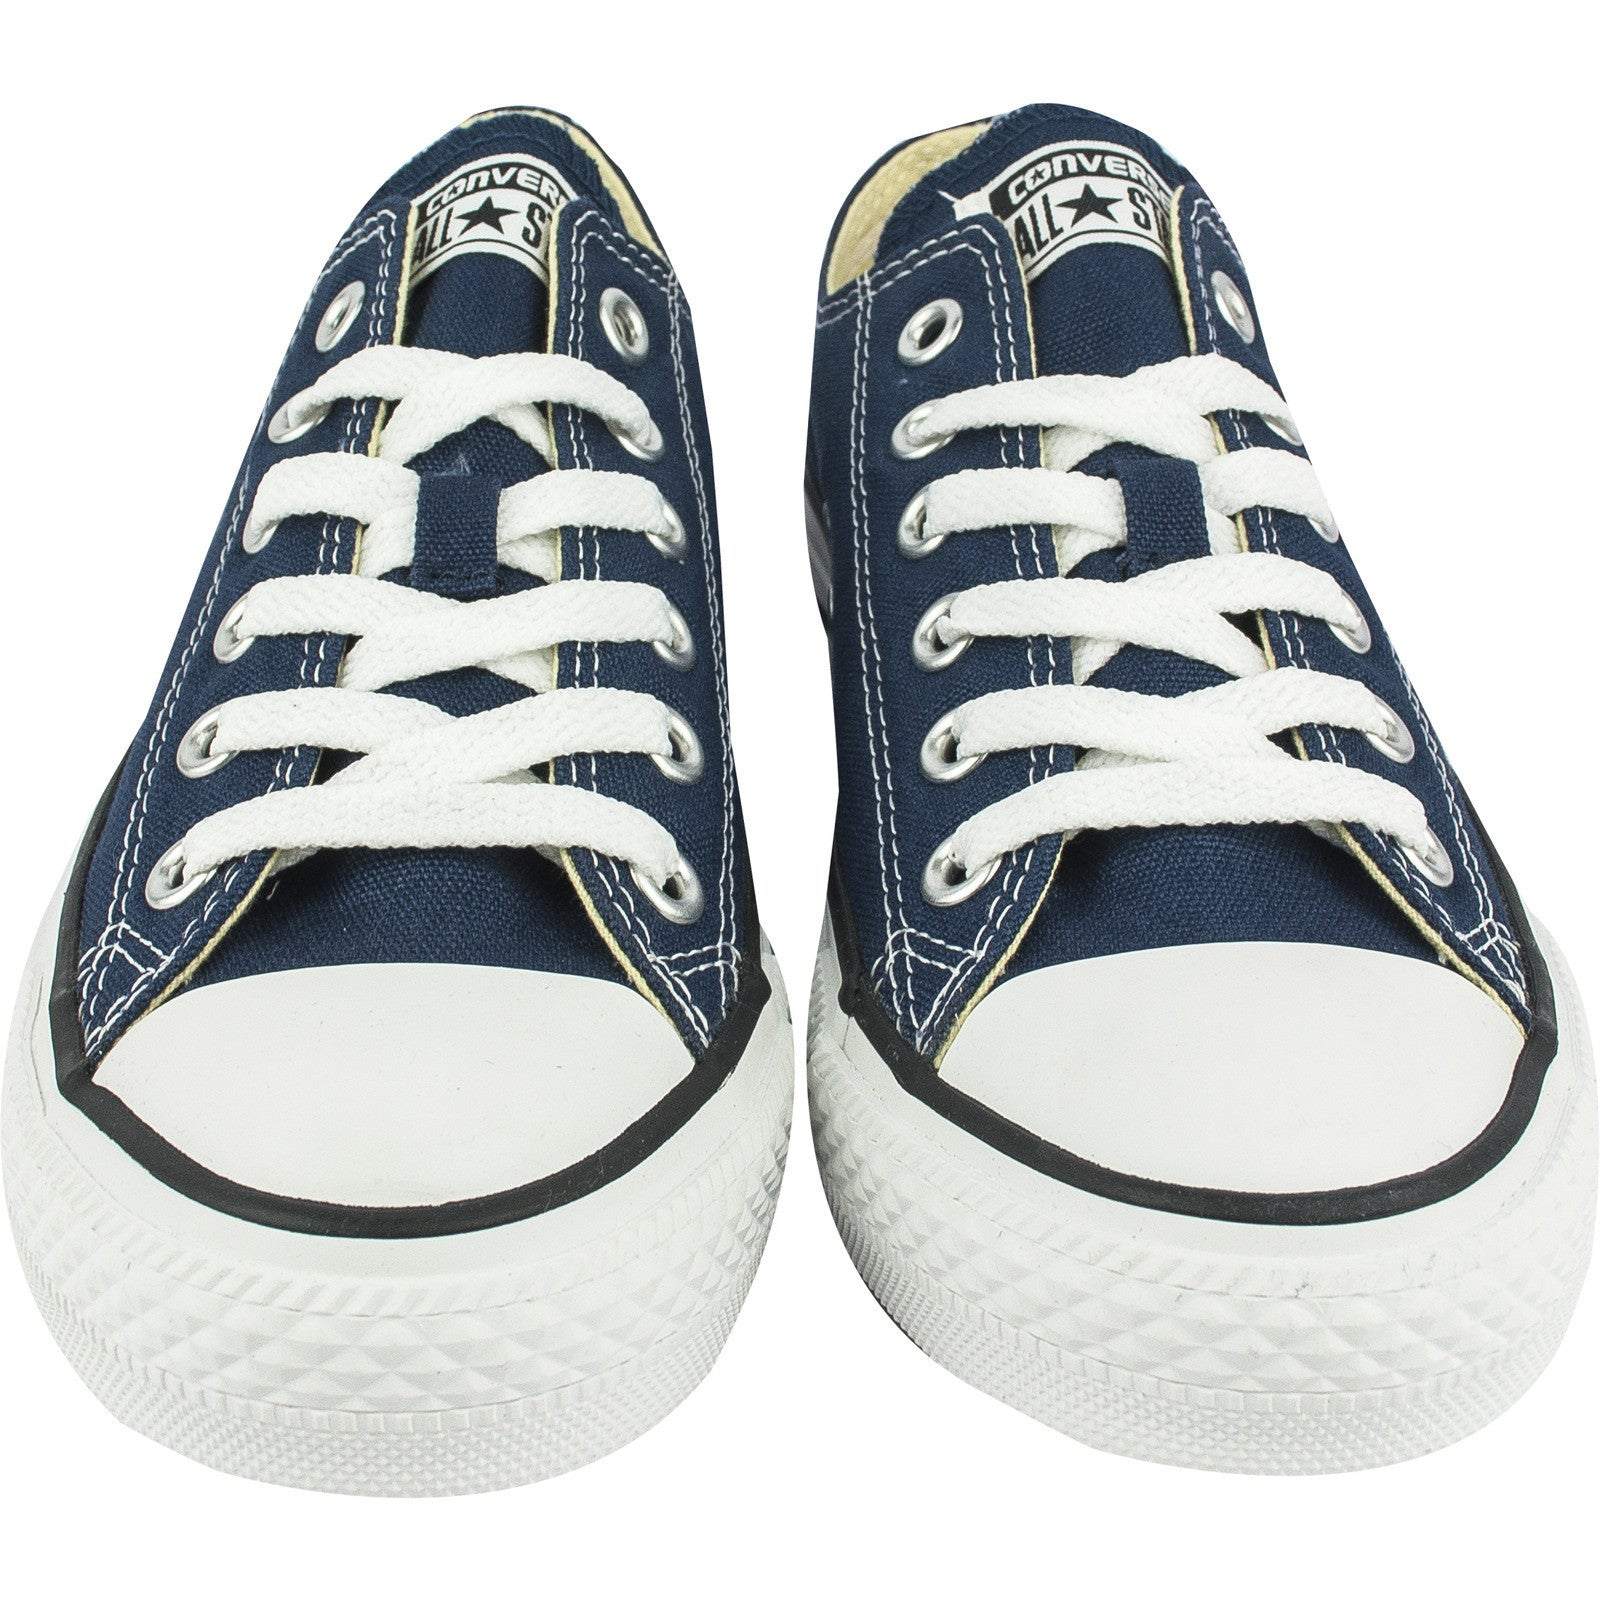 3b84e0d062ee ... Converse Classic Chuck Taylor Low Trainer Sneaker All Star OX NEW sizes  Shoes    ...